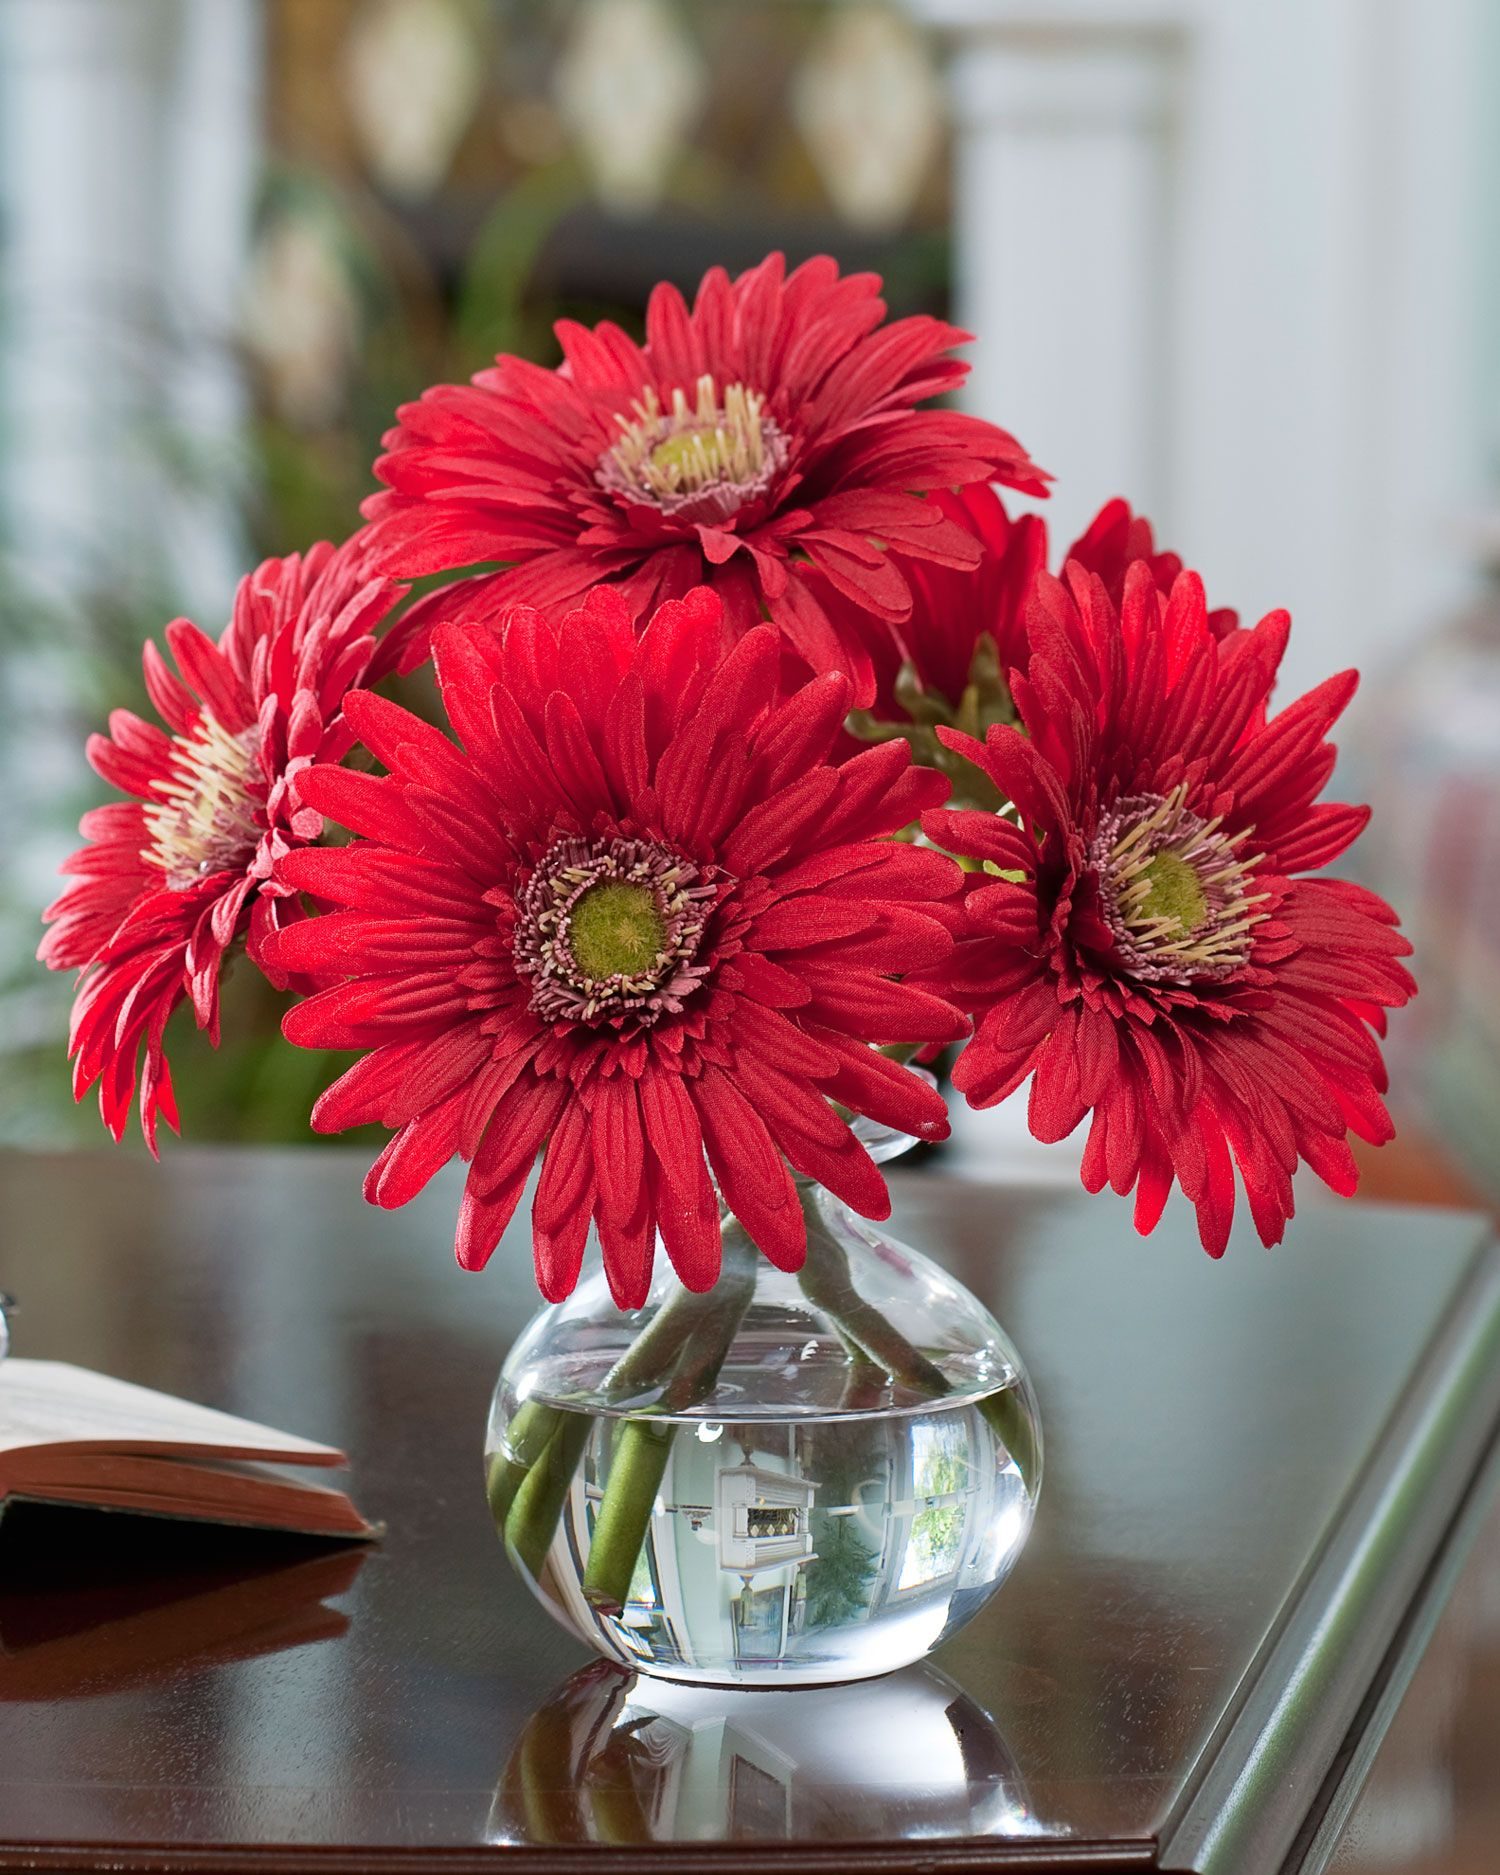 Pin by thuy nguyen on vase pinterest gerbera and flowers shop silk gerbera daisy arrangements in a variety of colors add a spot of happy color to your interior at petals reviewsmspy